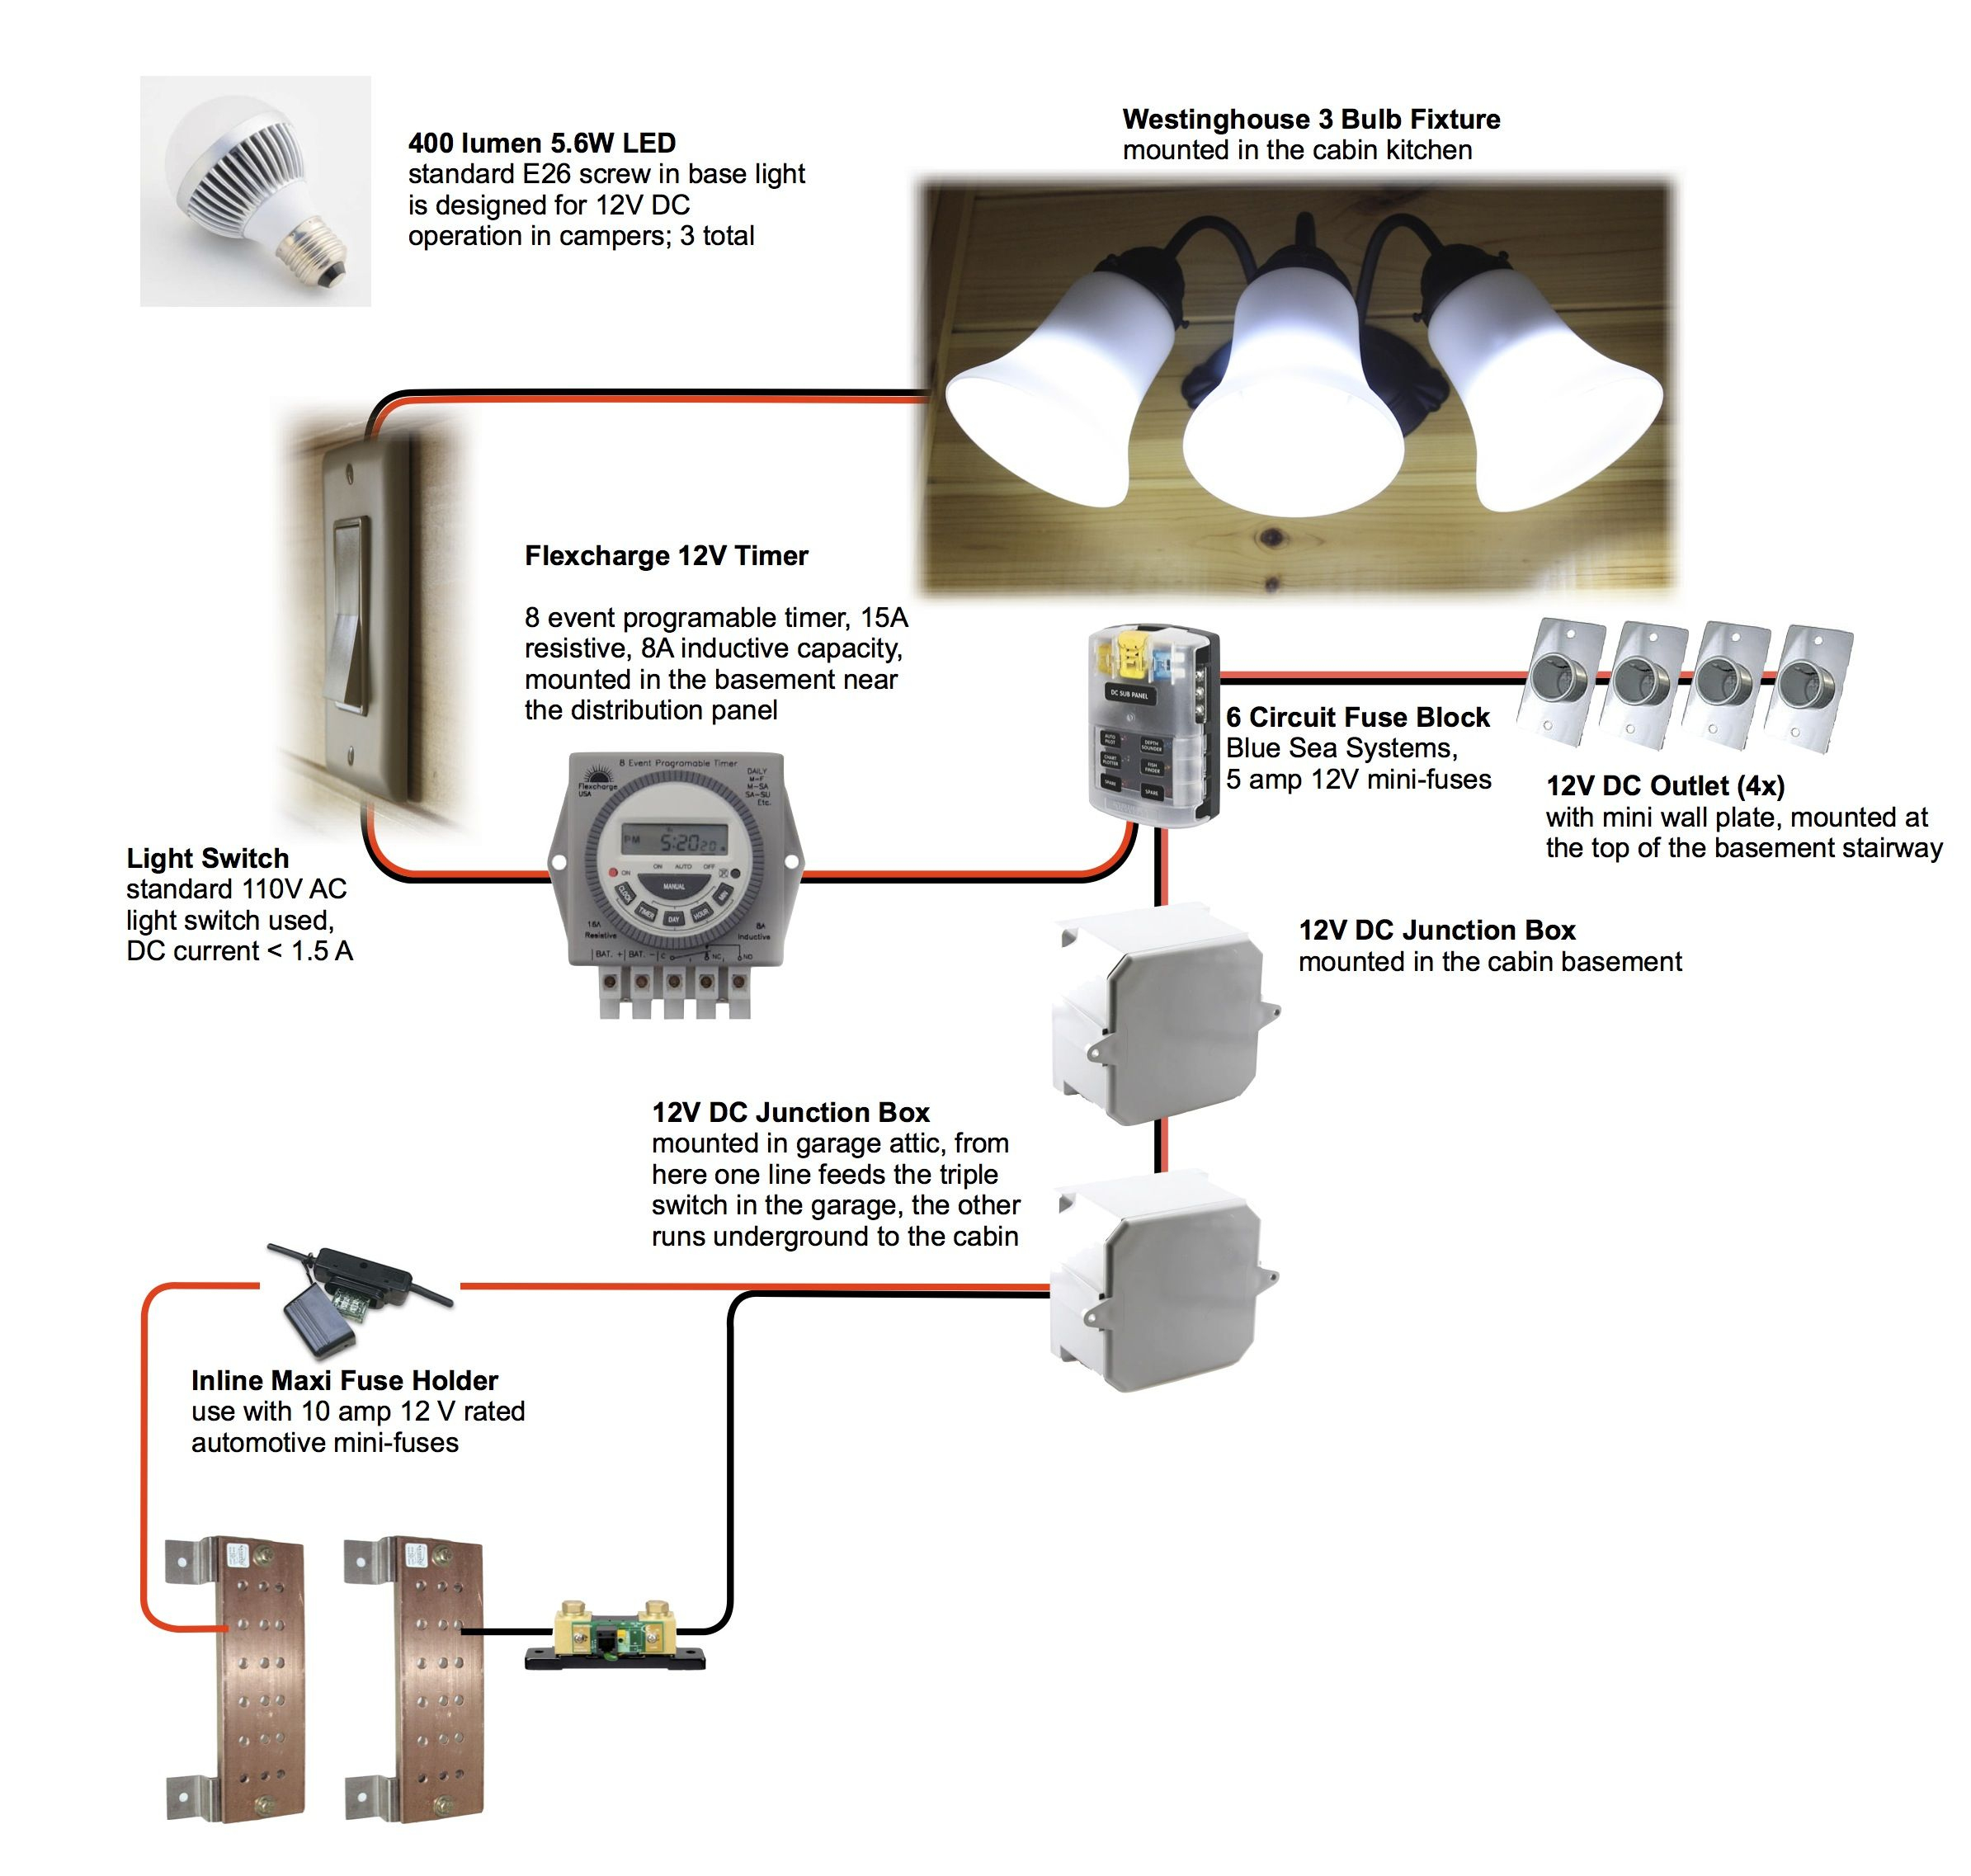 Wiring Diagram For Led Trailer Lights | Wiring Diagrams Gallery - Wiring Led Trailer Lights Diagram